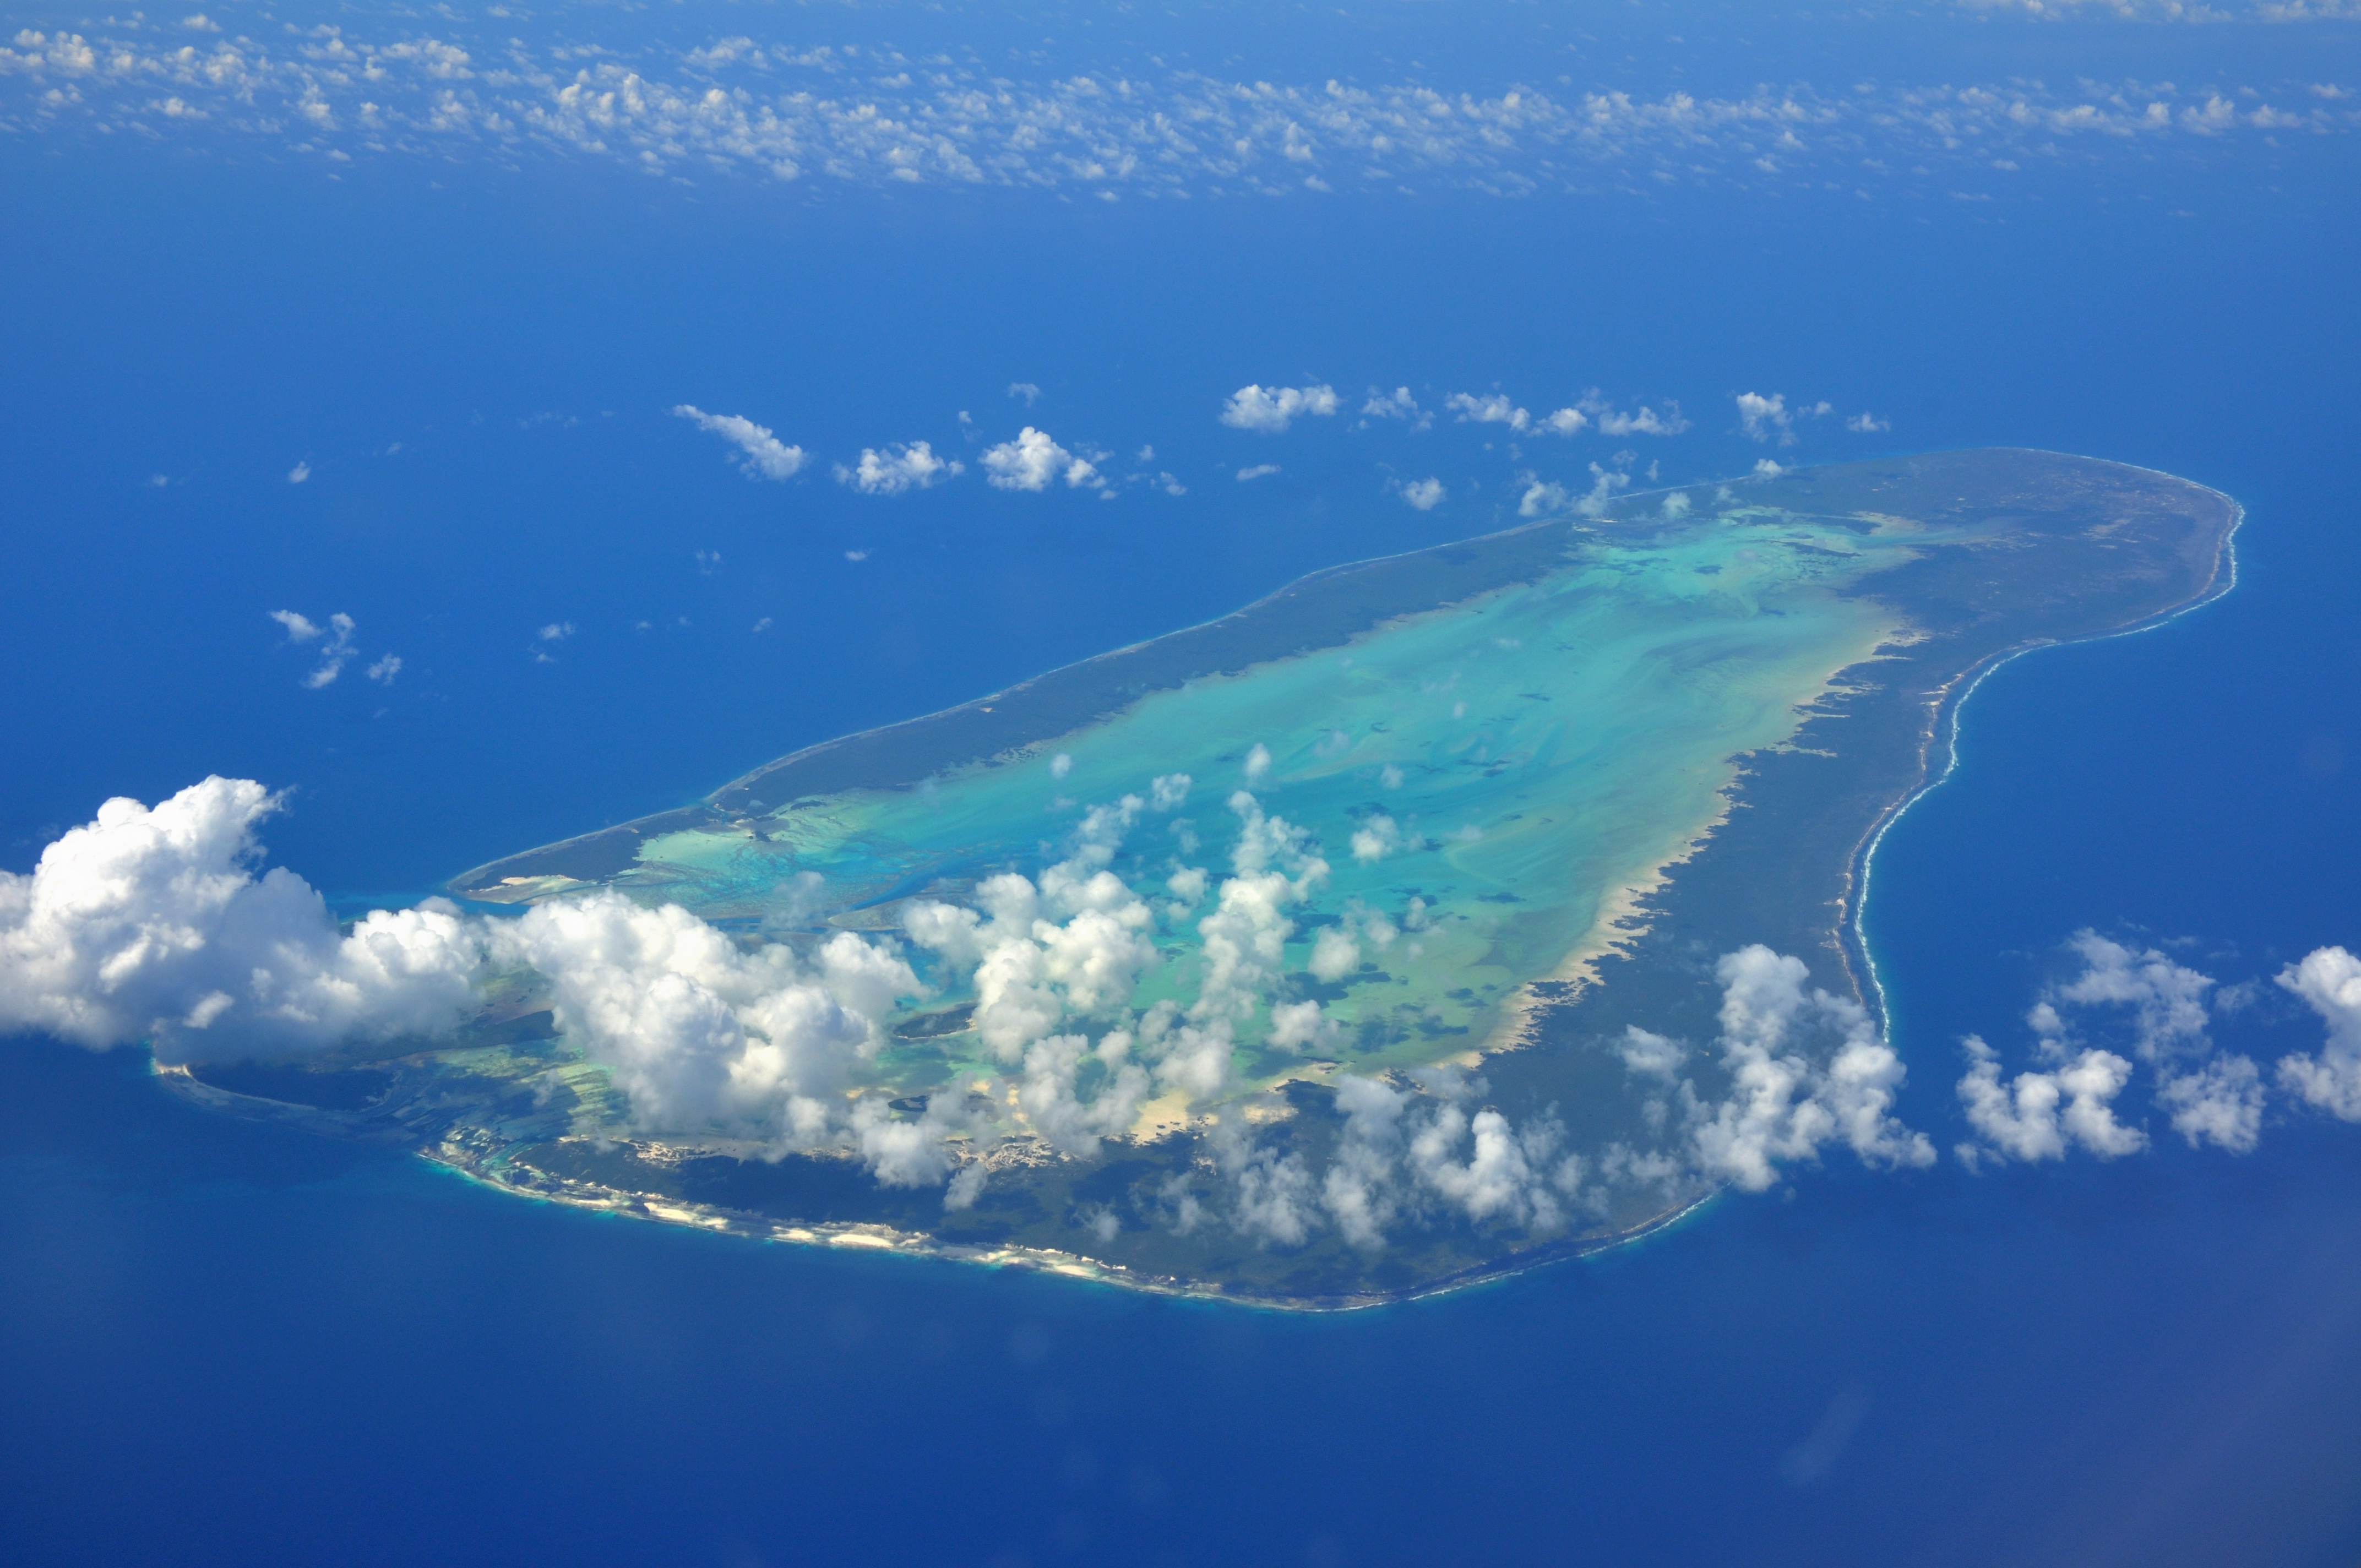 File Seychelles Outer Islands 10 20